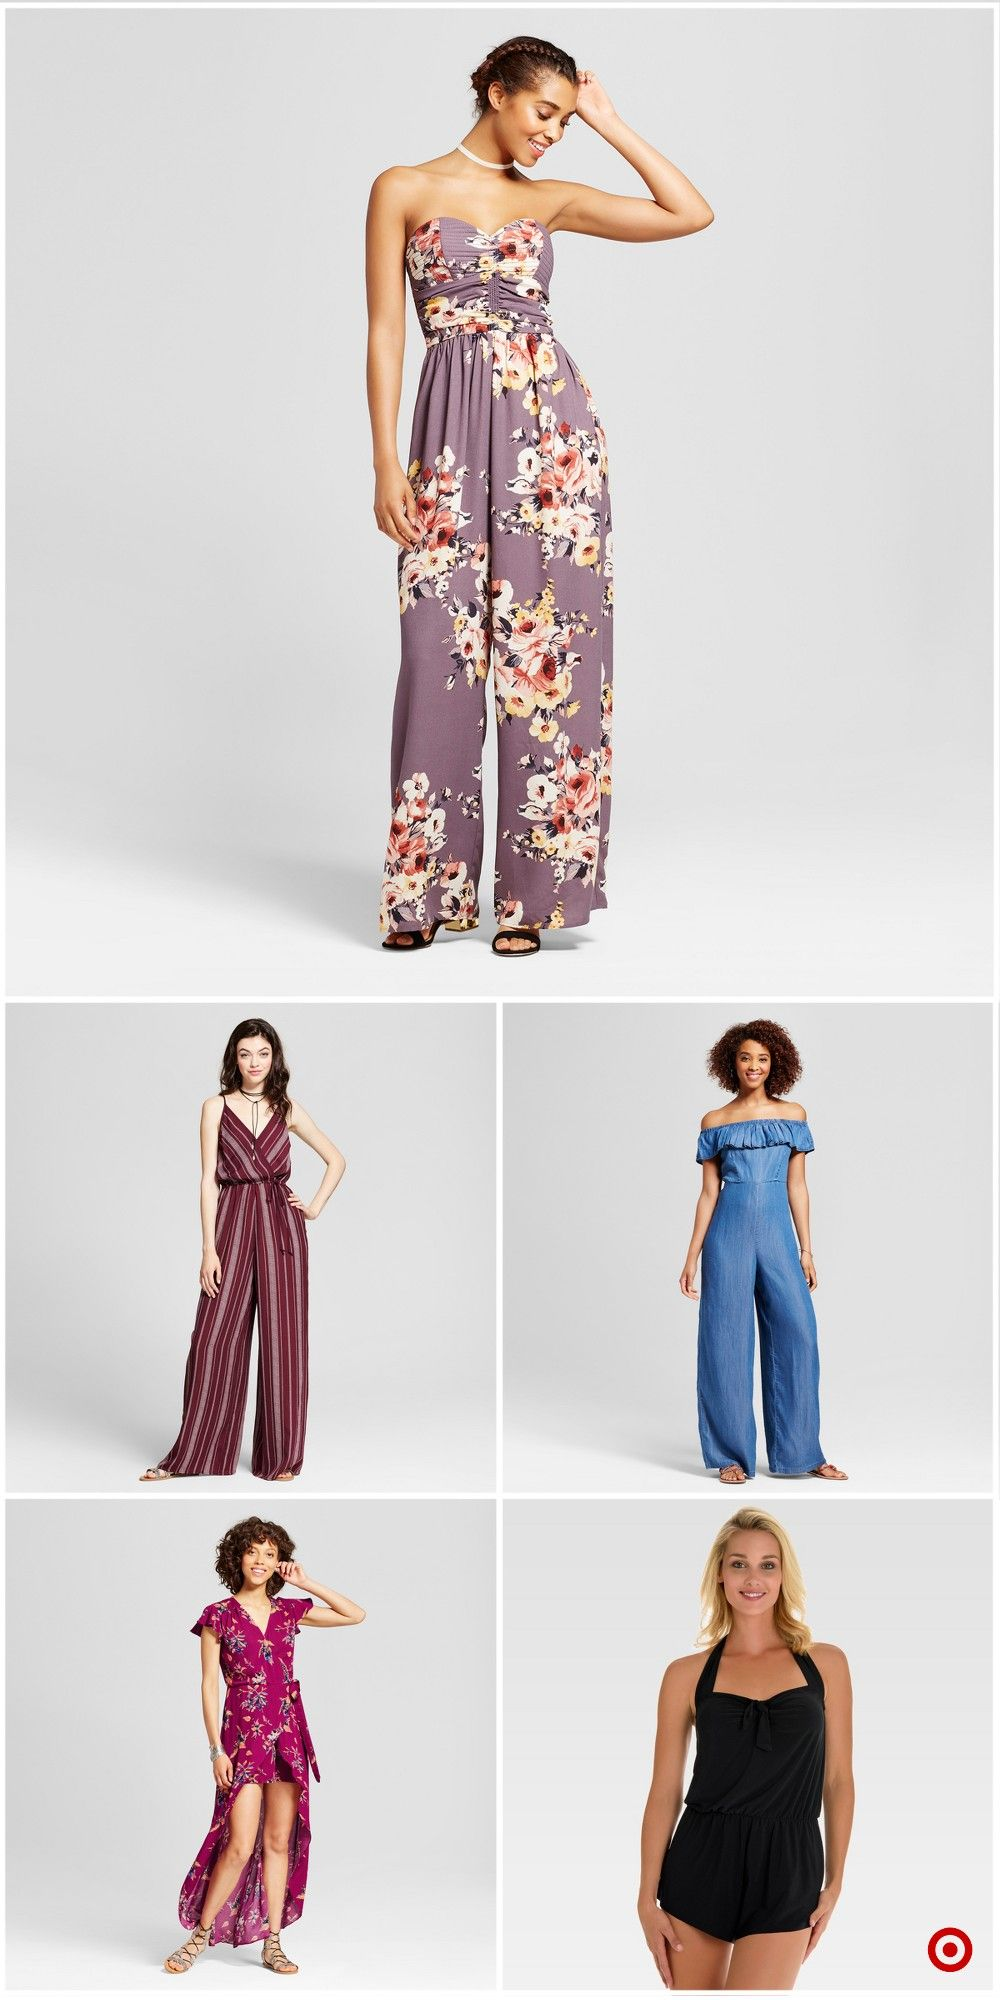 bf80bf2d4e1 Shop Target for rompers you will love at great low prices. Free shipping on  orders of  35+ or free same-day pick-up in store.